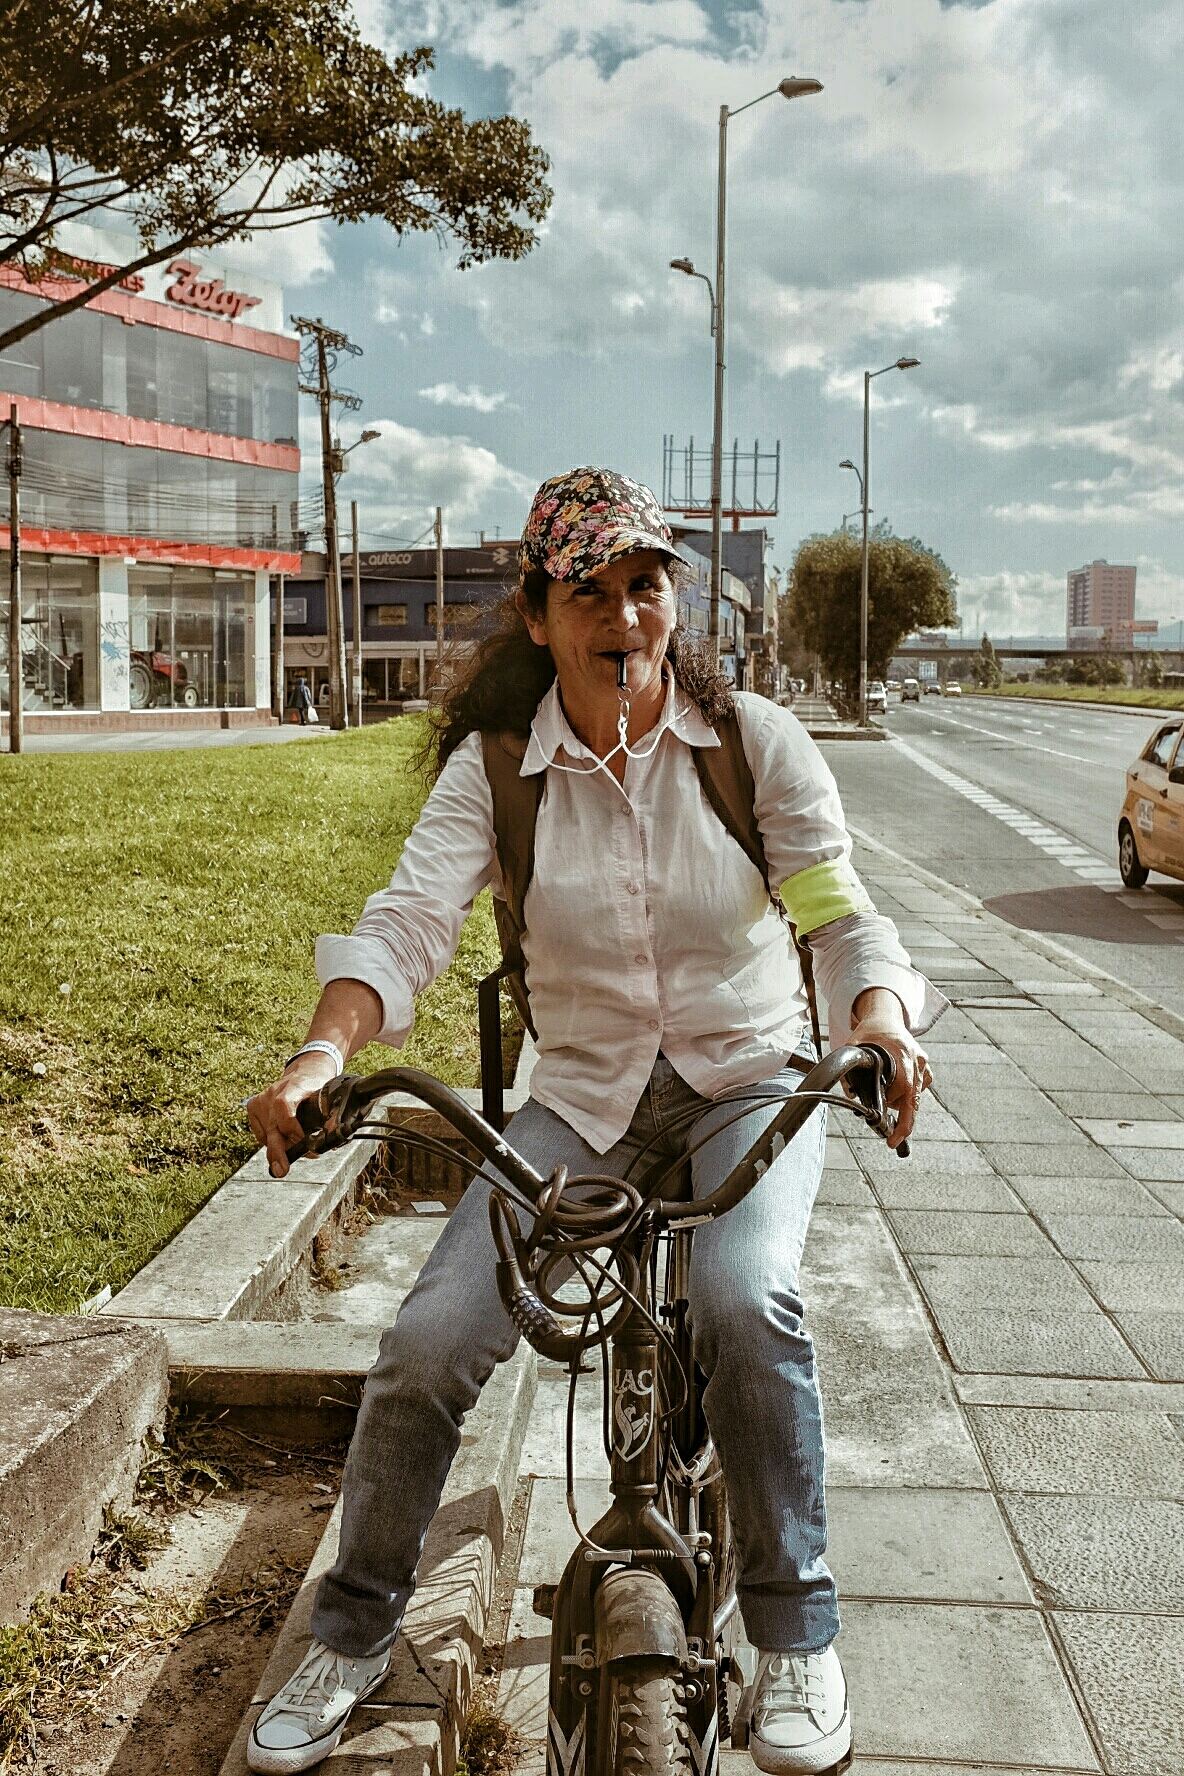 Local biker defending herself against taxis with a whistle.